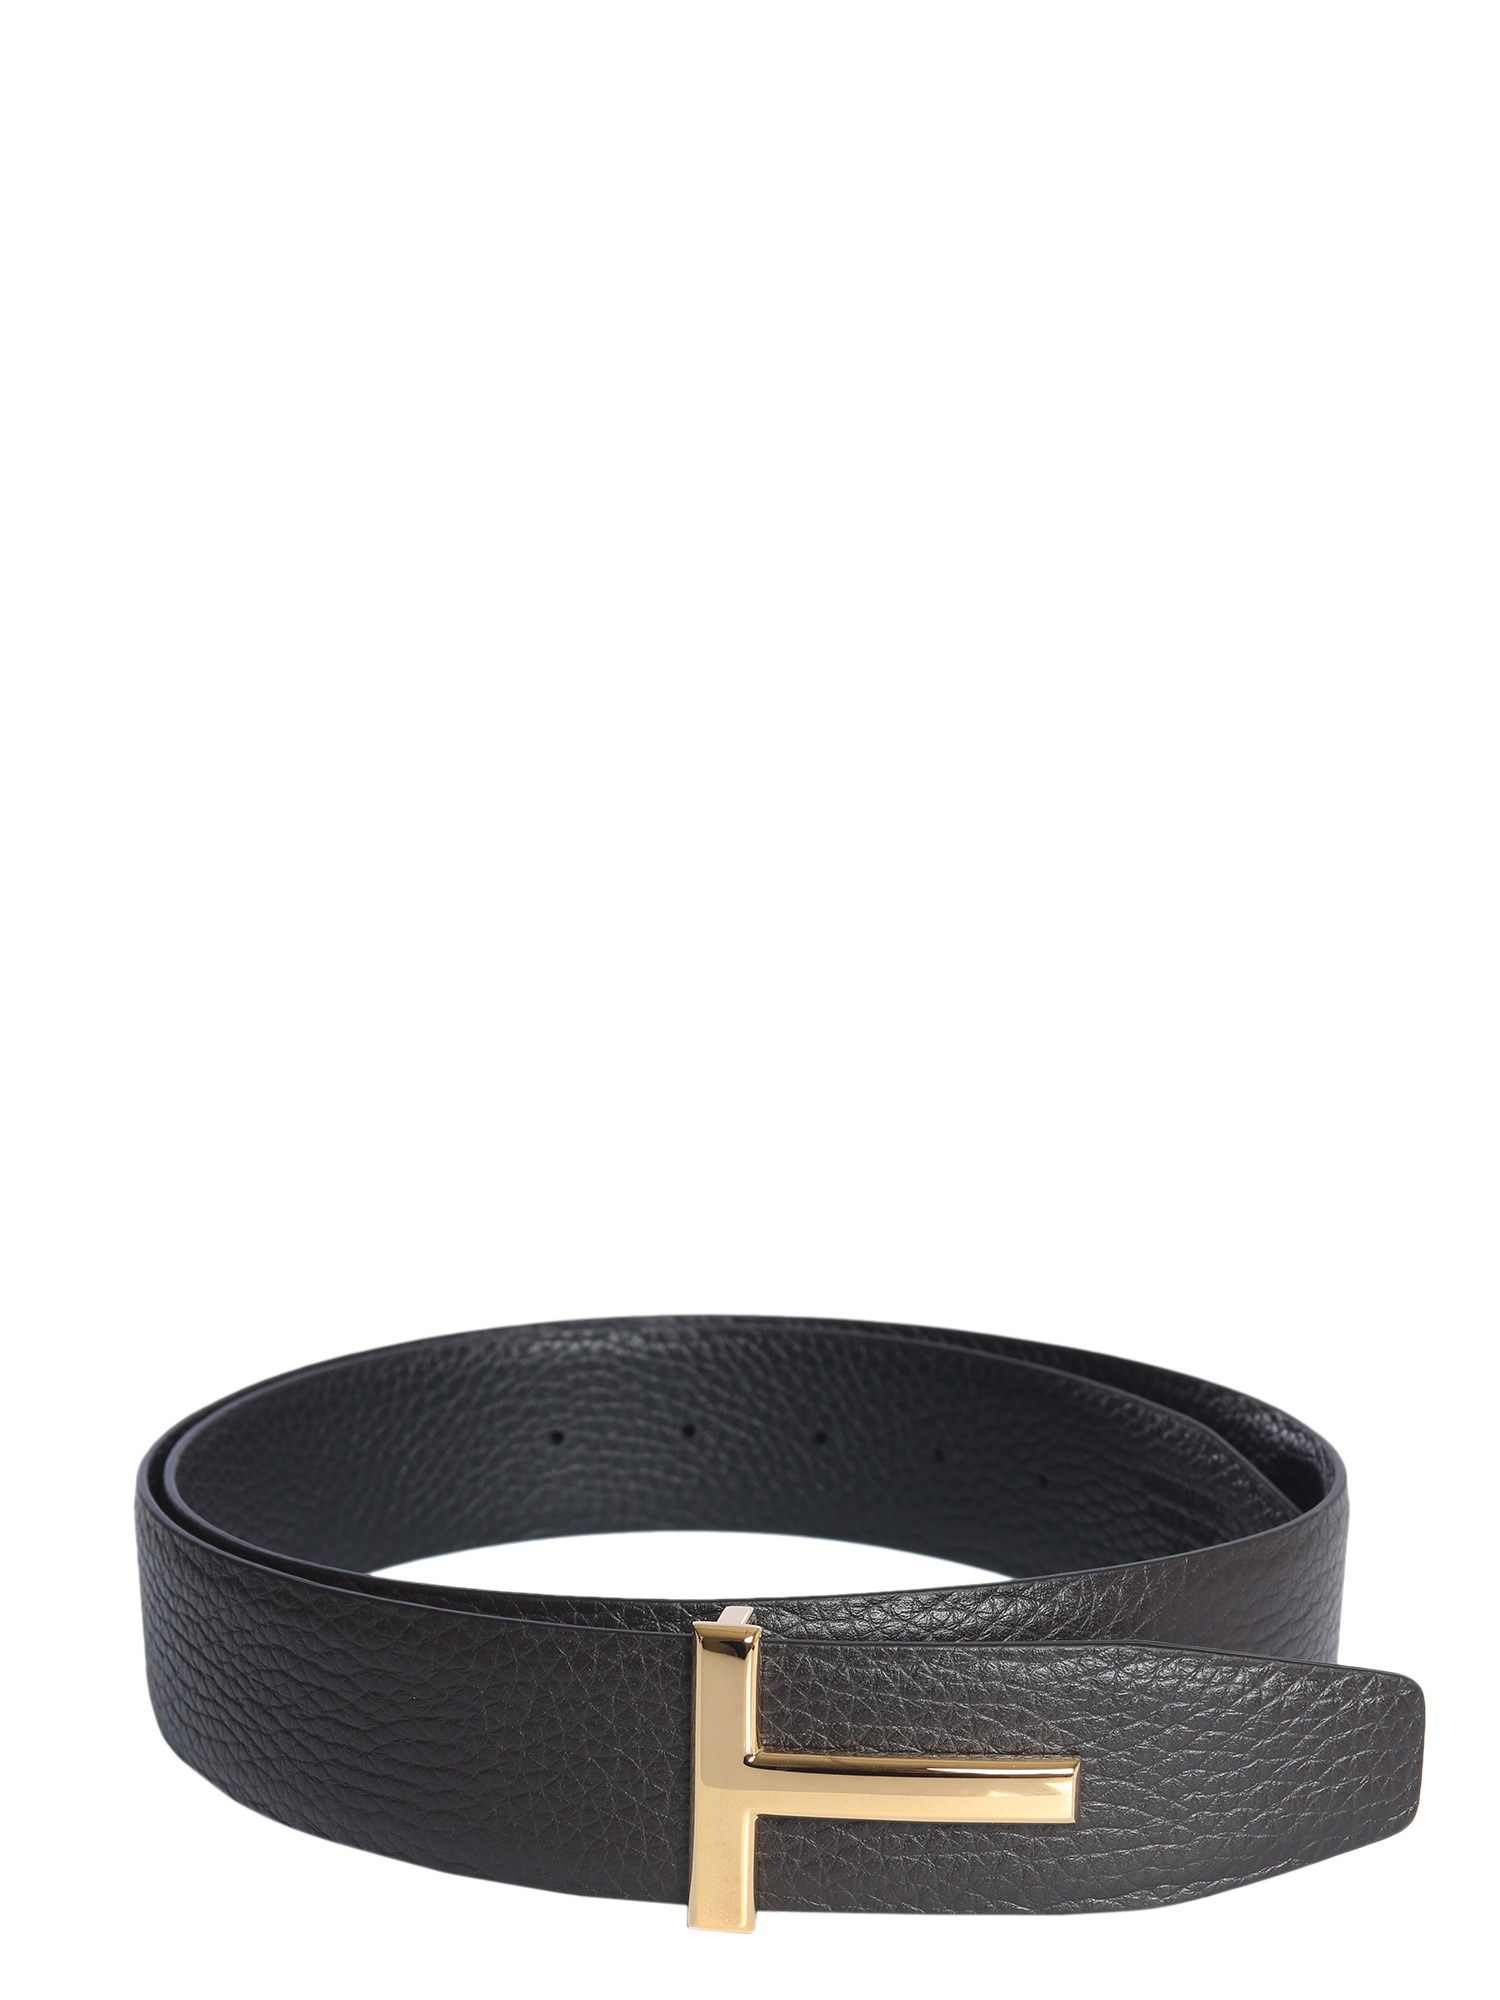 2d4beae890d Tom Ford Reversible Leather Belt With